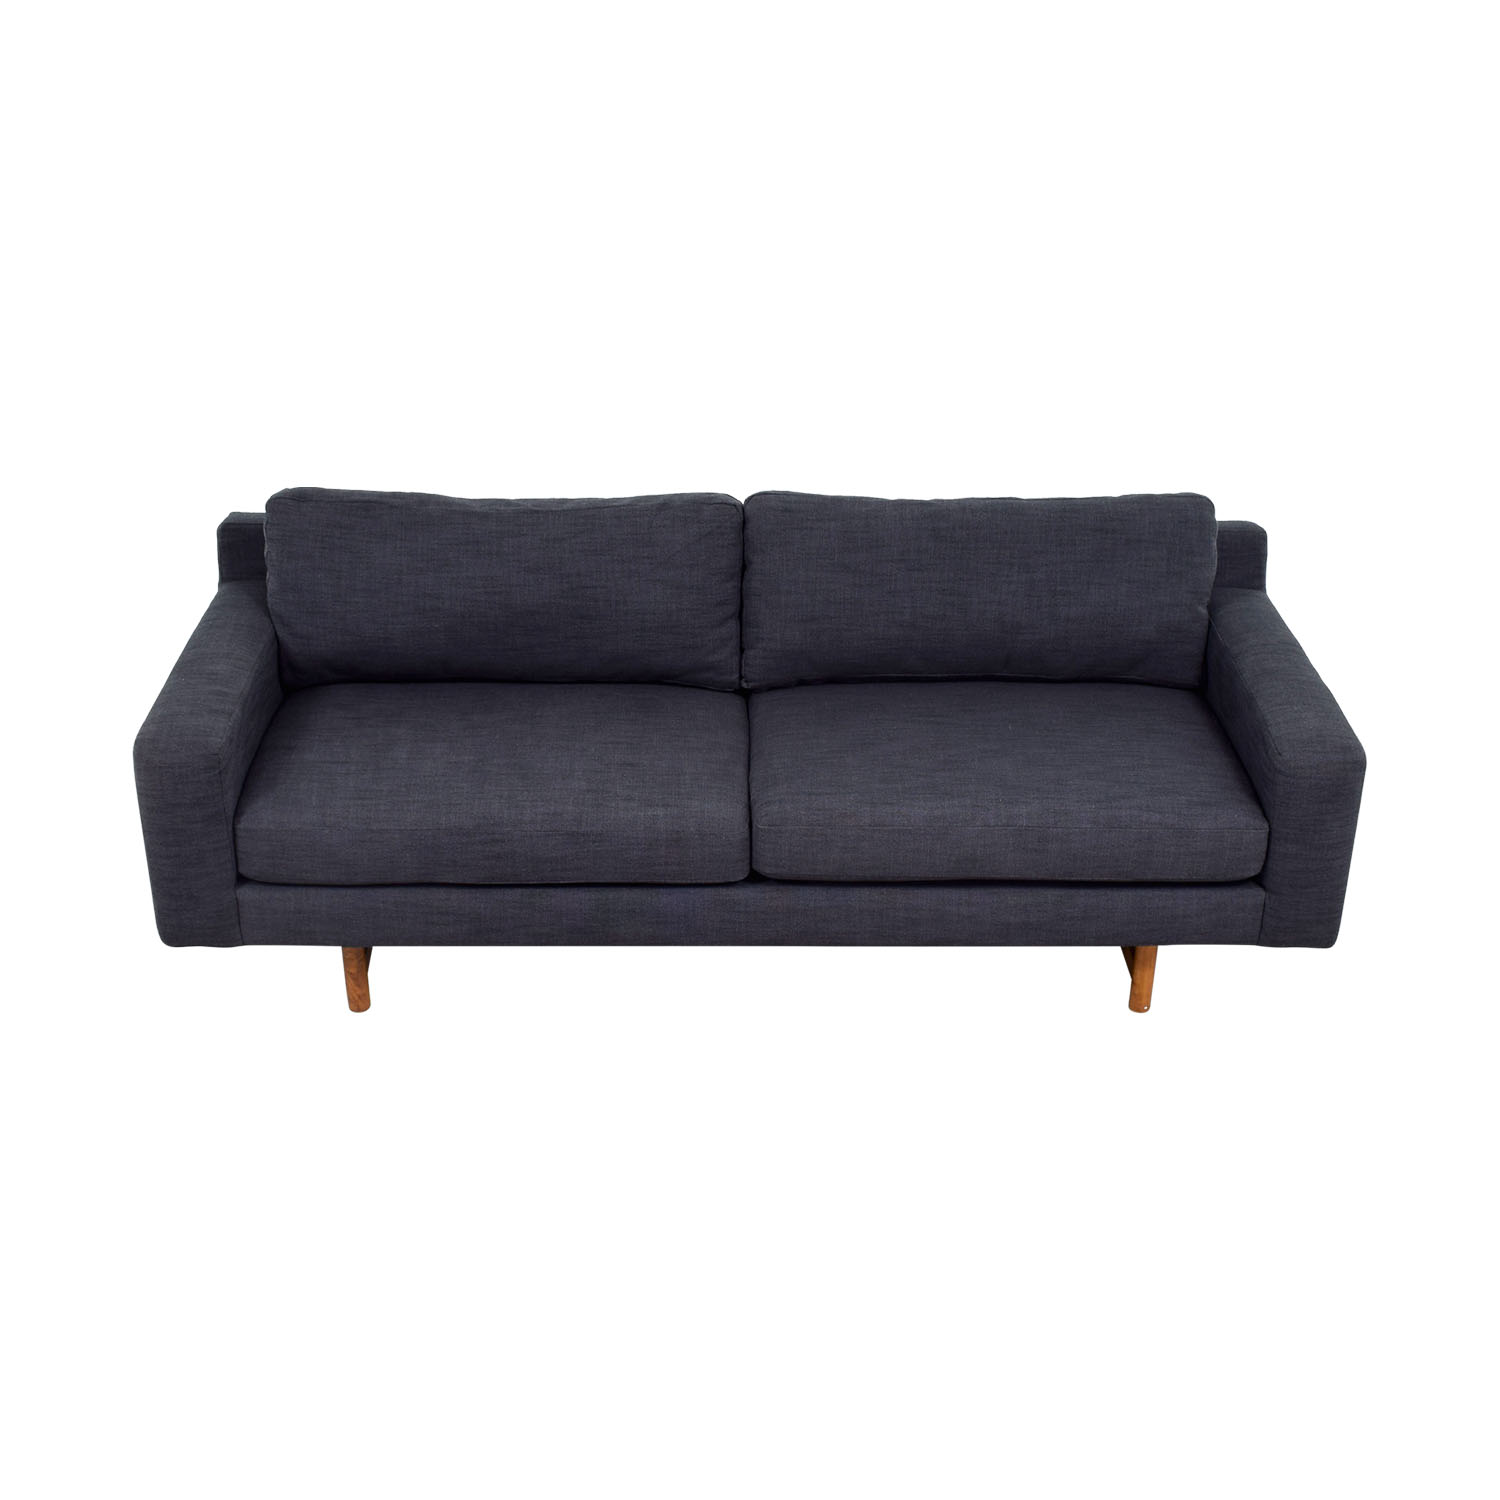 West Elm West Elm Blue Two-Cushion Sofa Classic Sofas